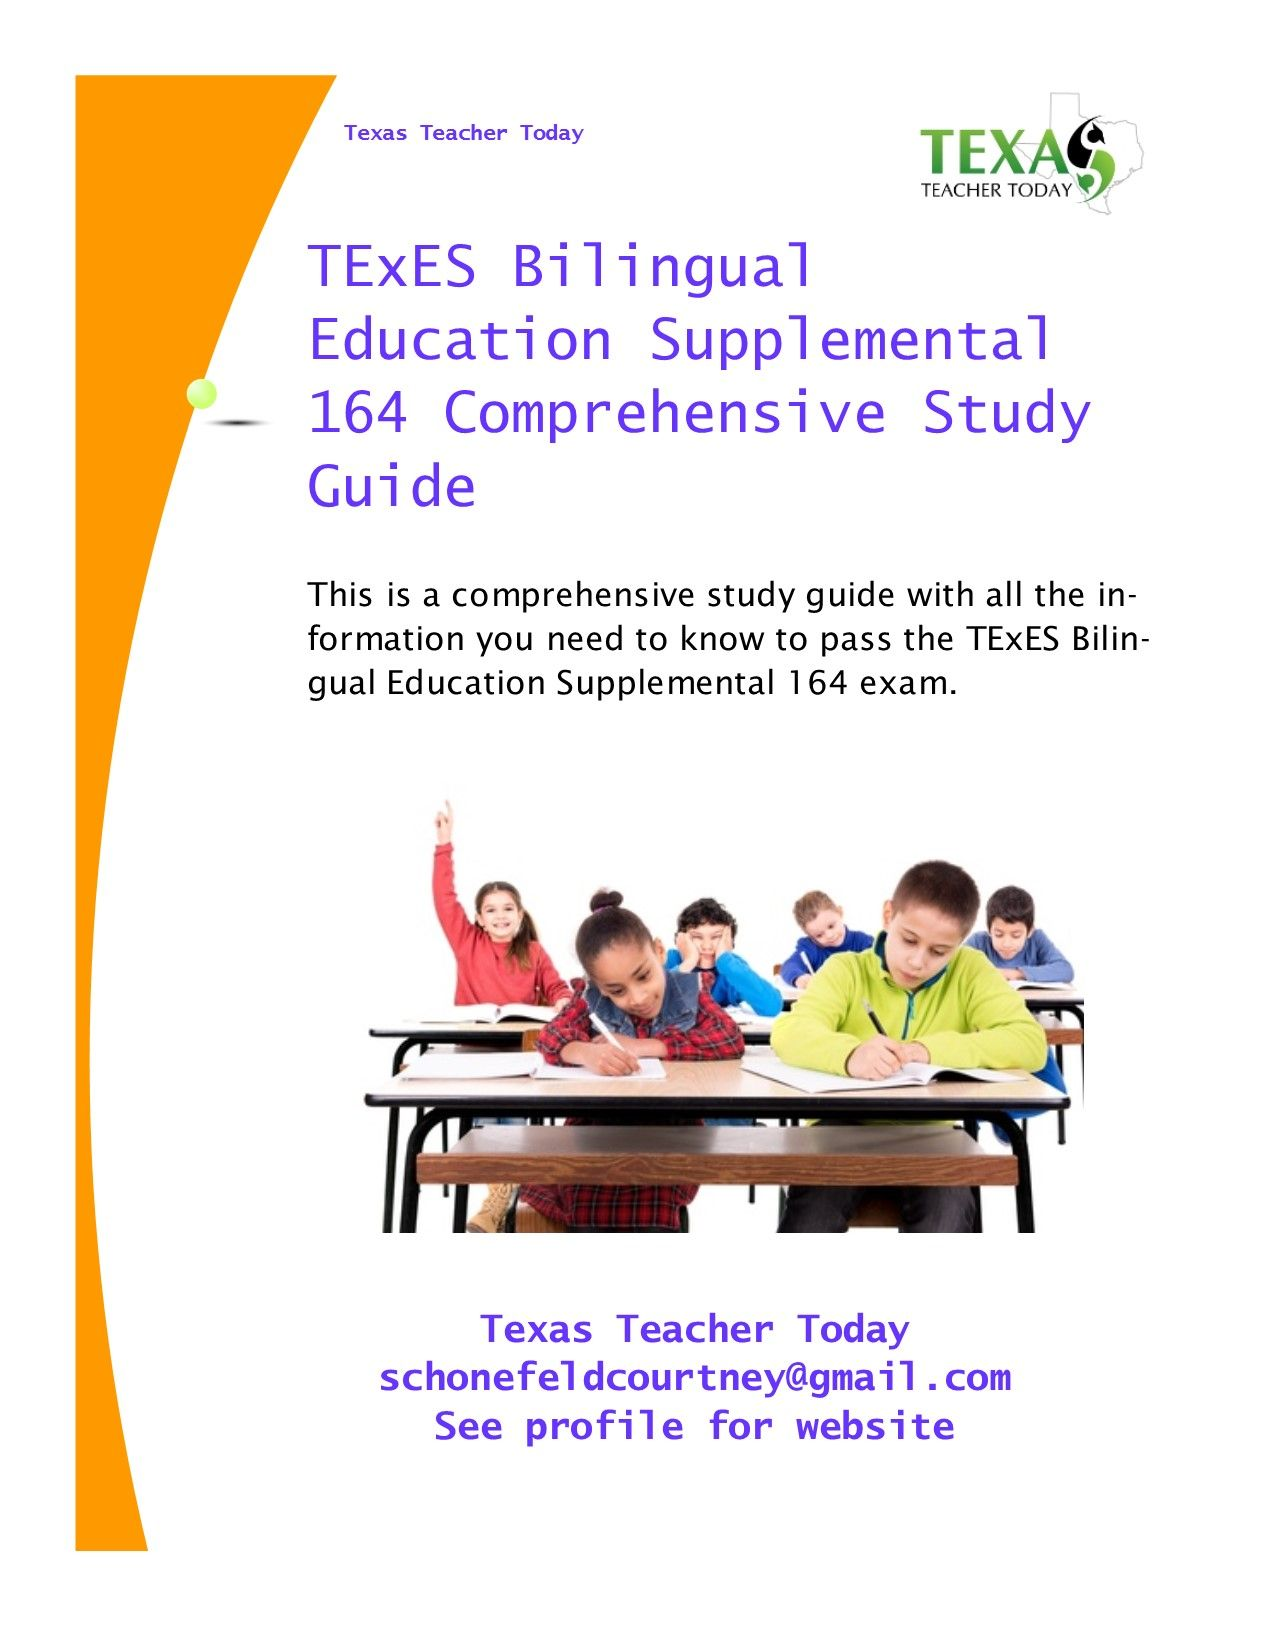 Passing the texes certification exam - 7 Best Help To Pass Your Texes Certification Exam Images On Pinterest Study Guides Teacher Stuff And Assessment